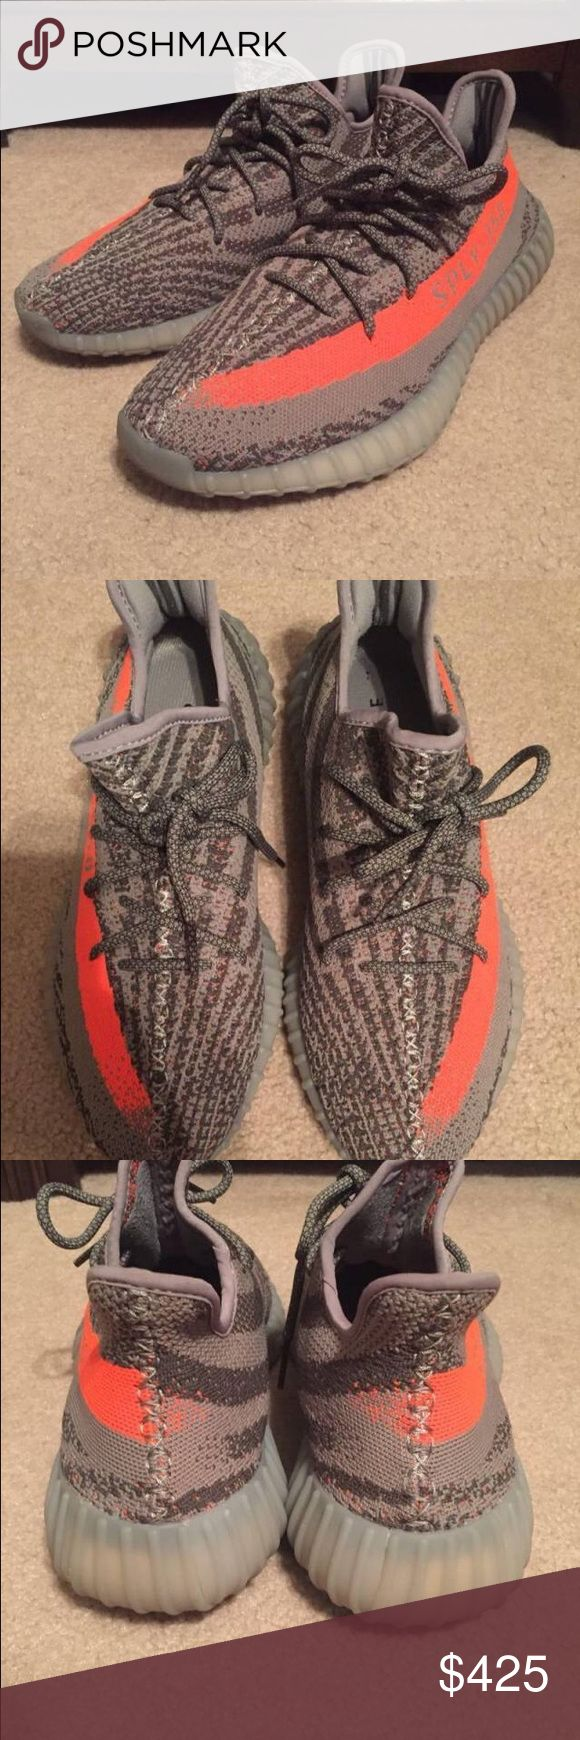 "Yeezy V2 ""Belugas"" Sz9 EXCELLENT condition, very comfortable shoe price negotiable. Yeezy Shoes Sneakers"